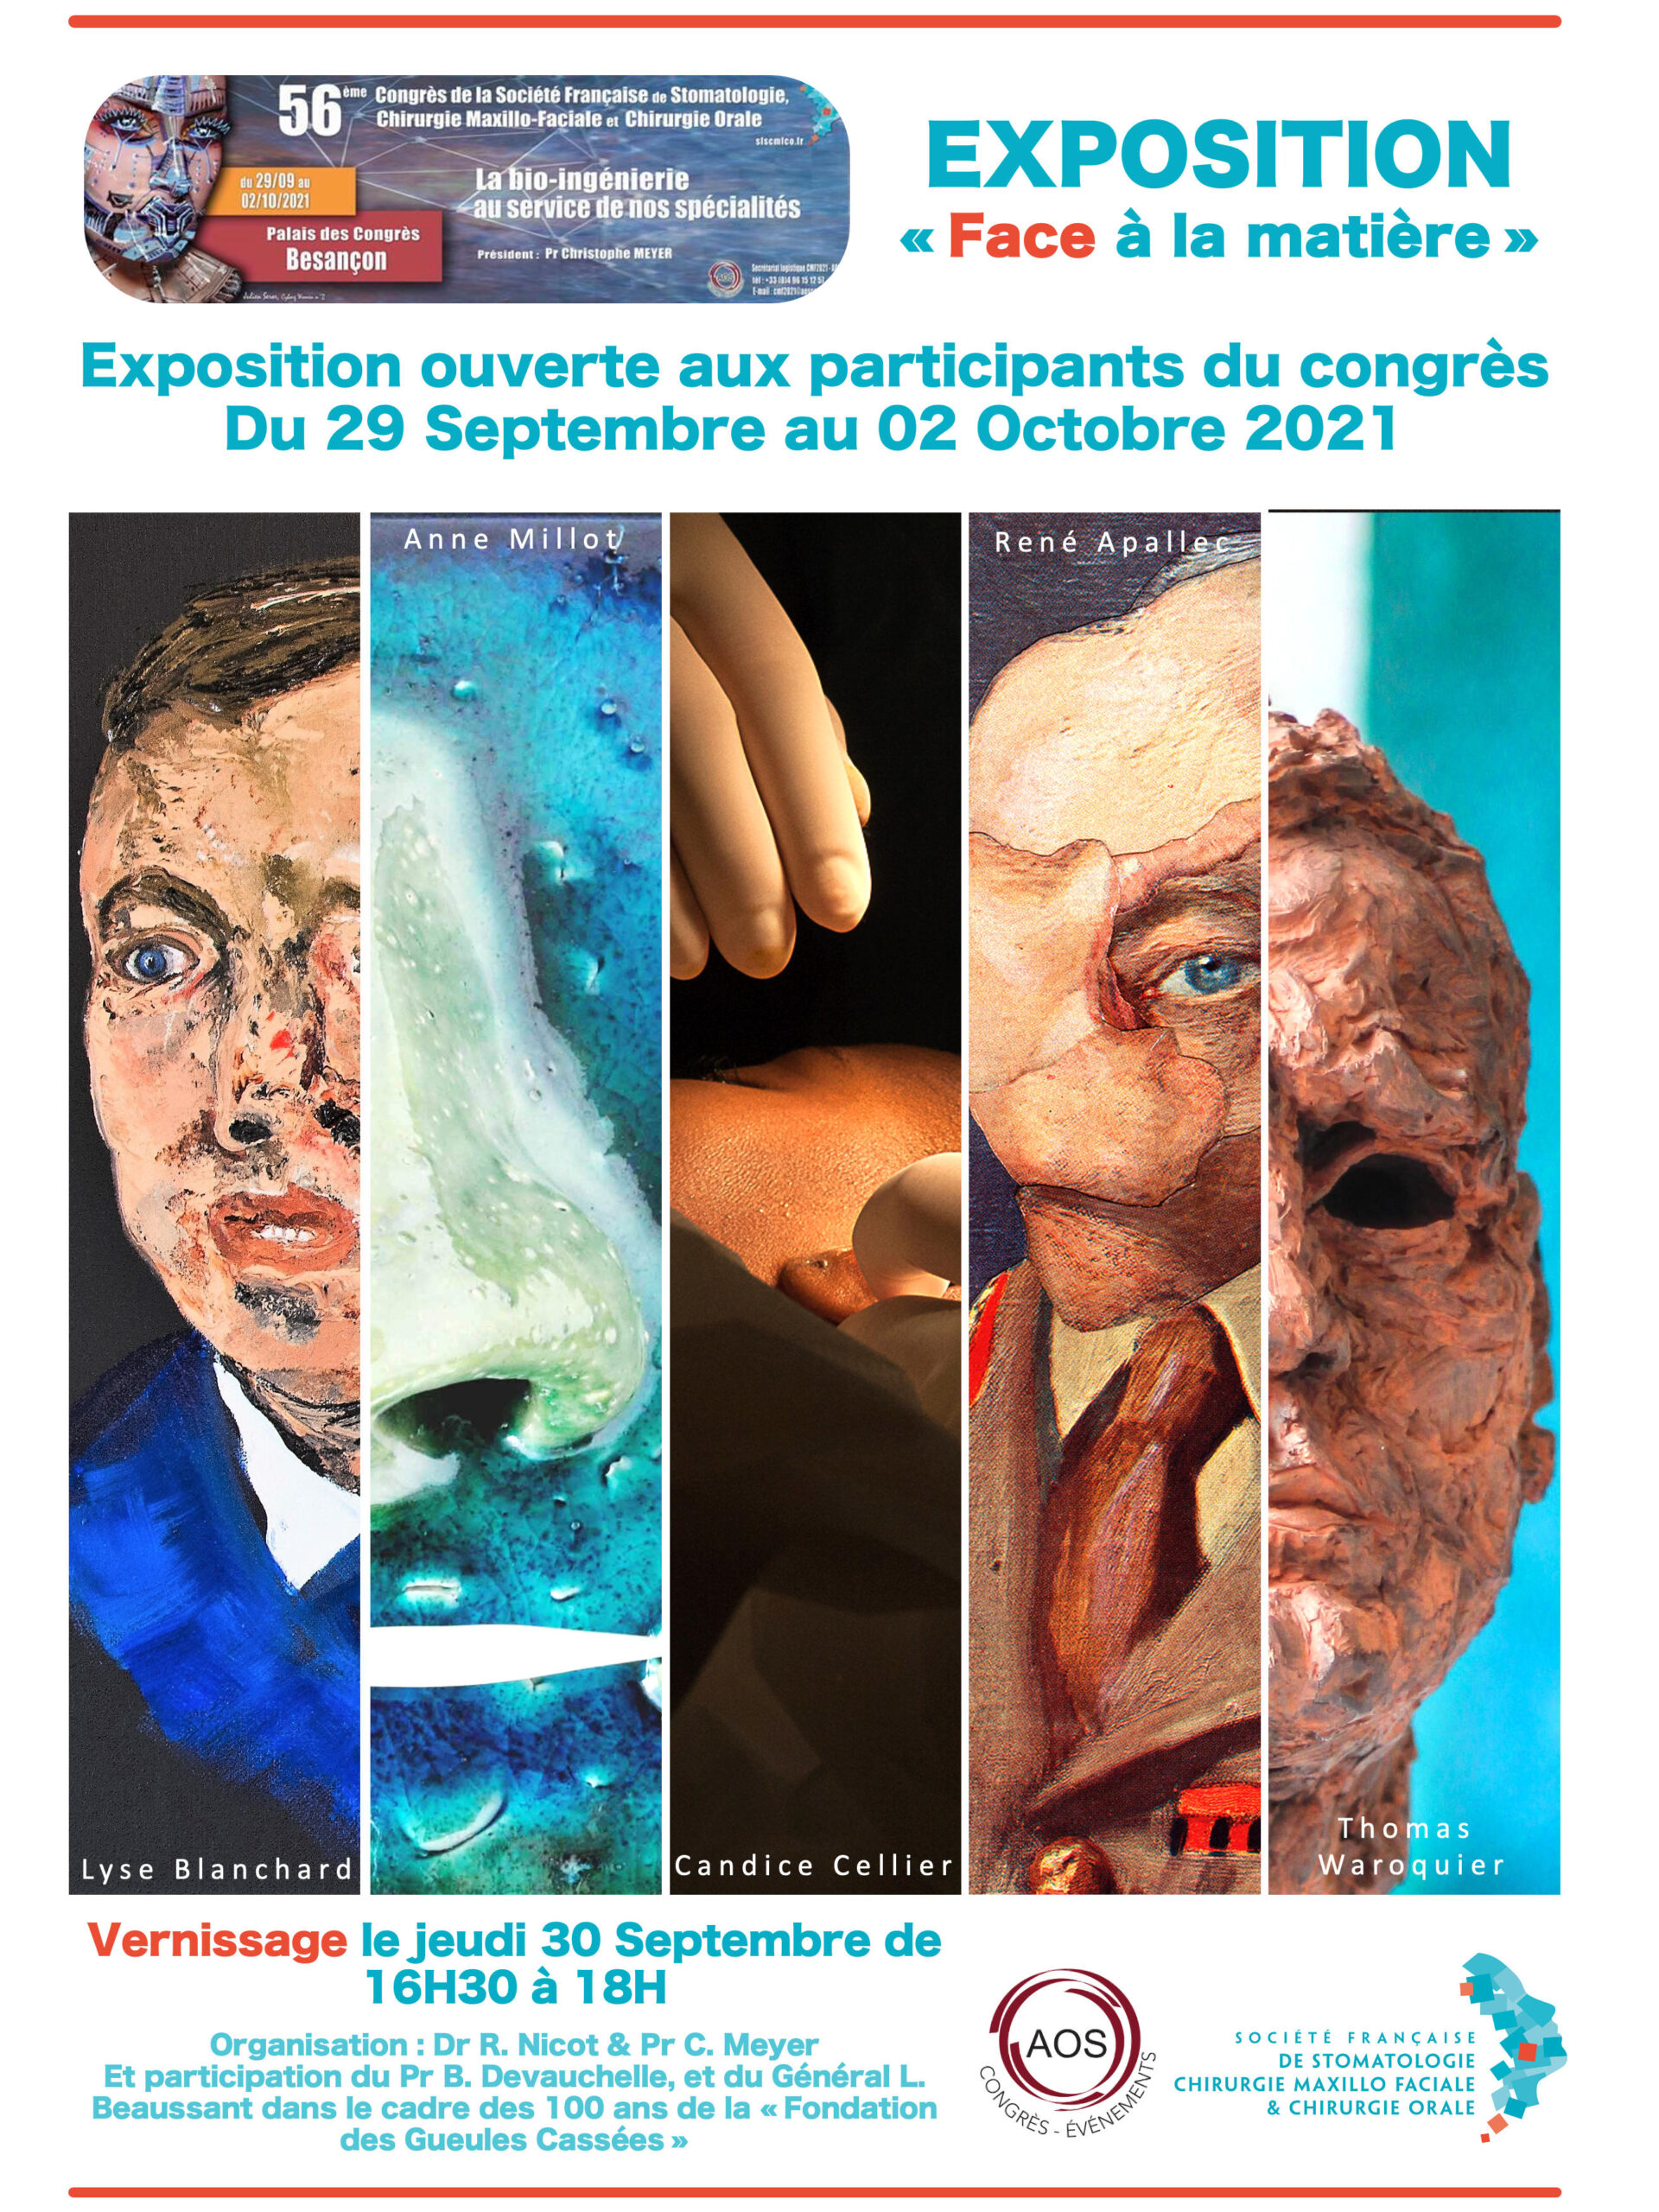 facealamatiere expo scaled »